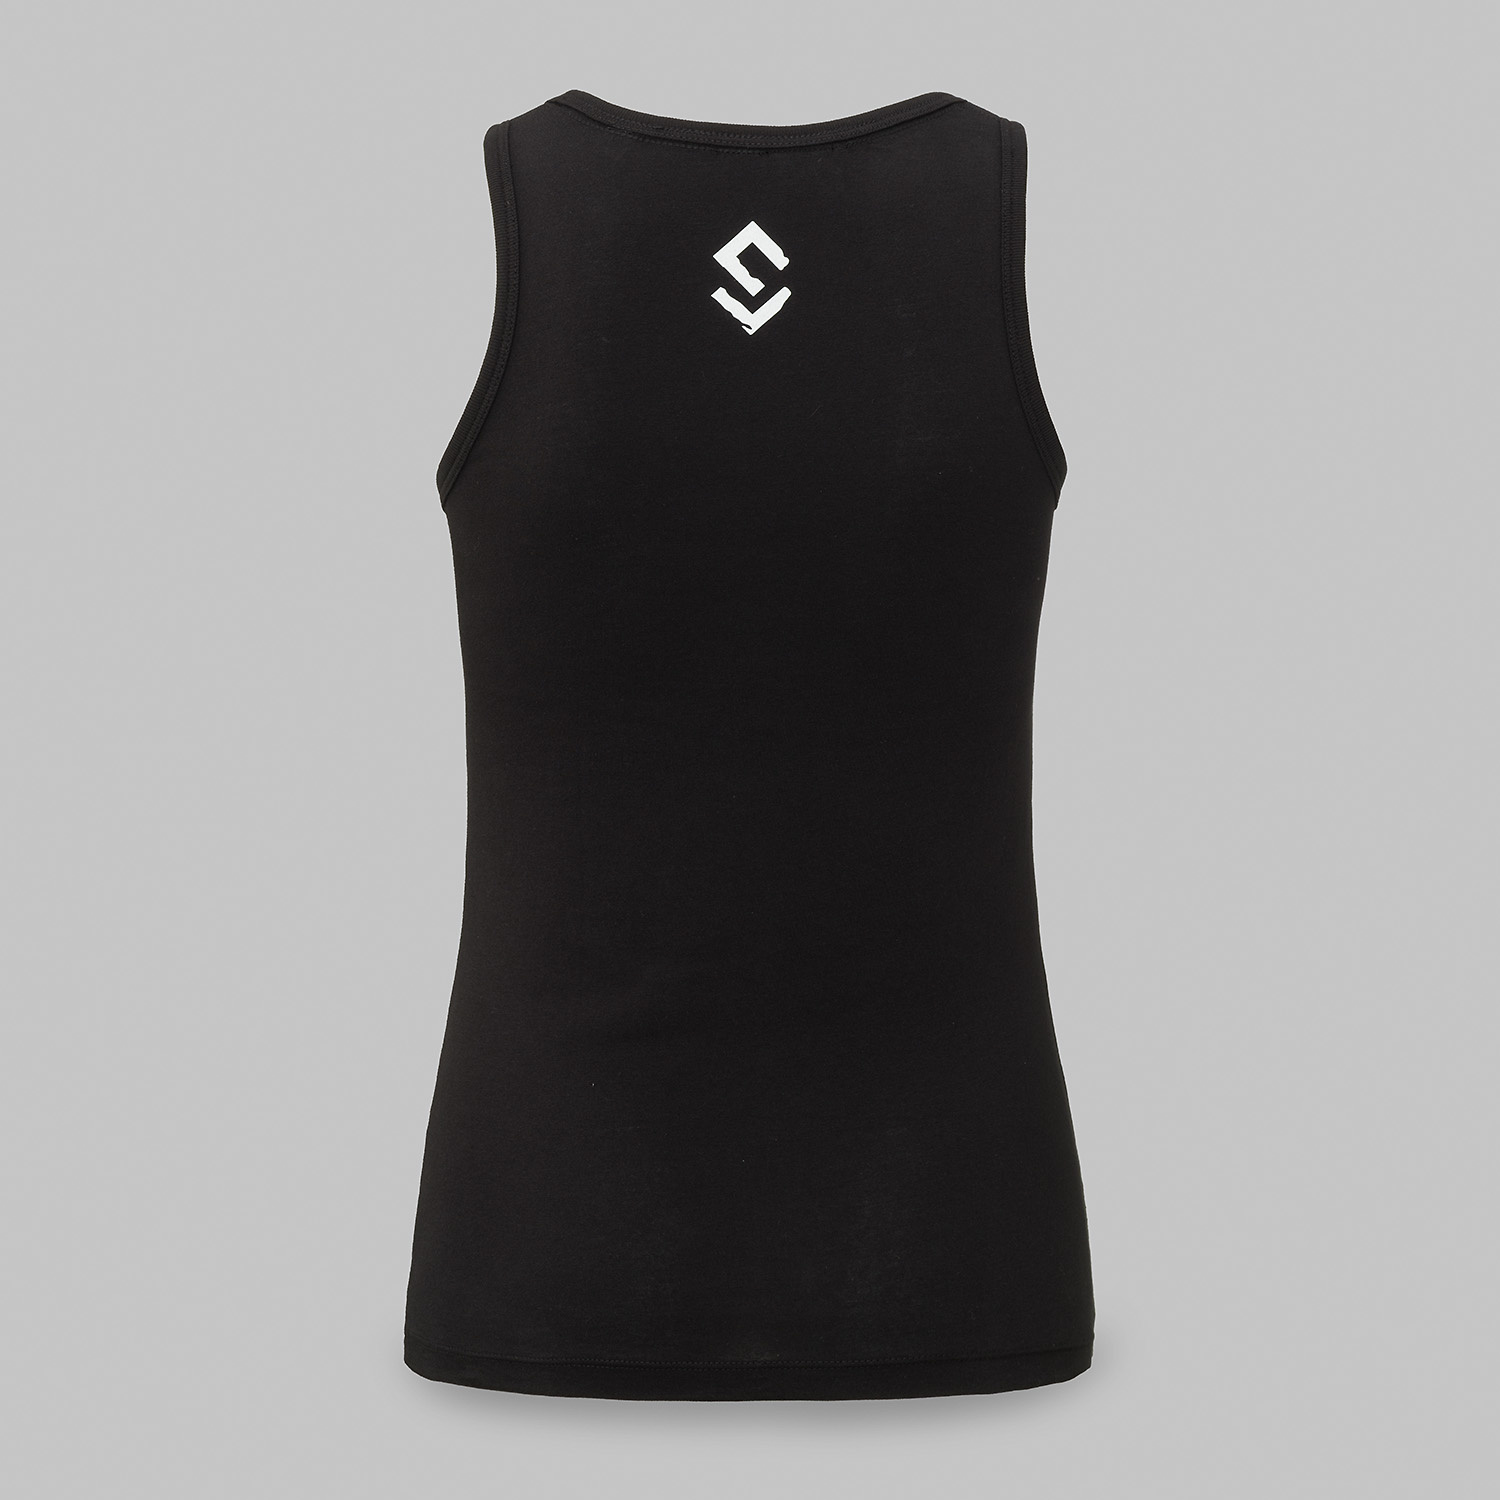 Sefa tanktop black/white-4